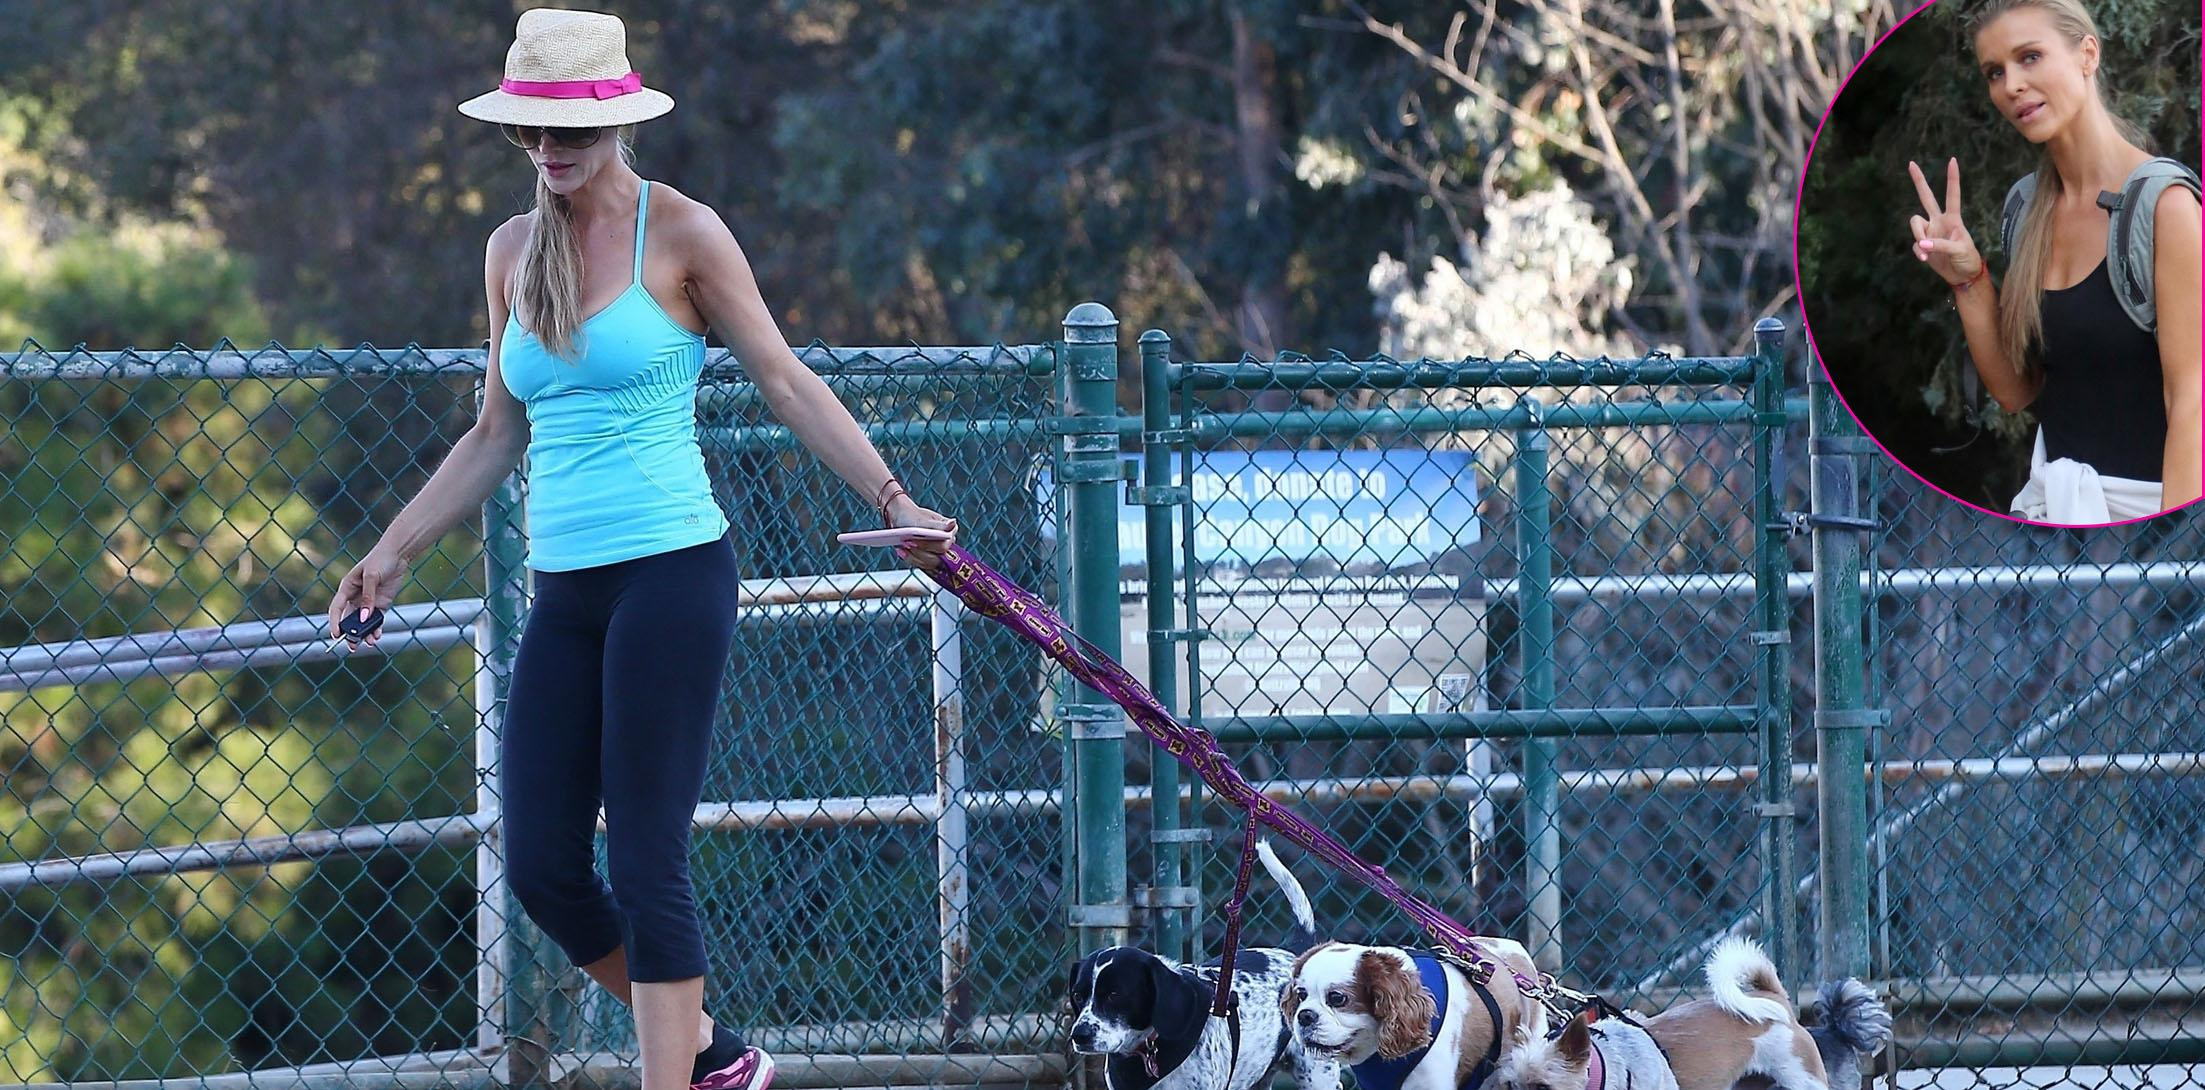 *EXCLUSIVE* Joanna Krupa takes her dogs to the dog park